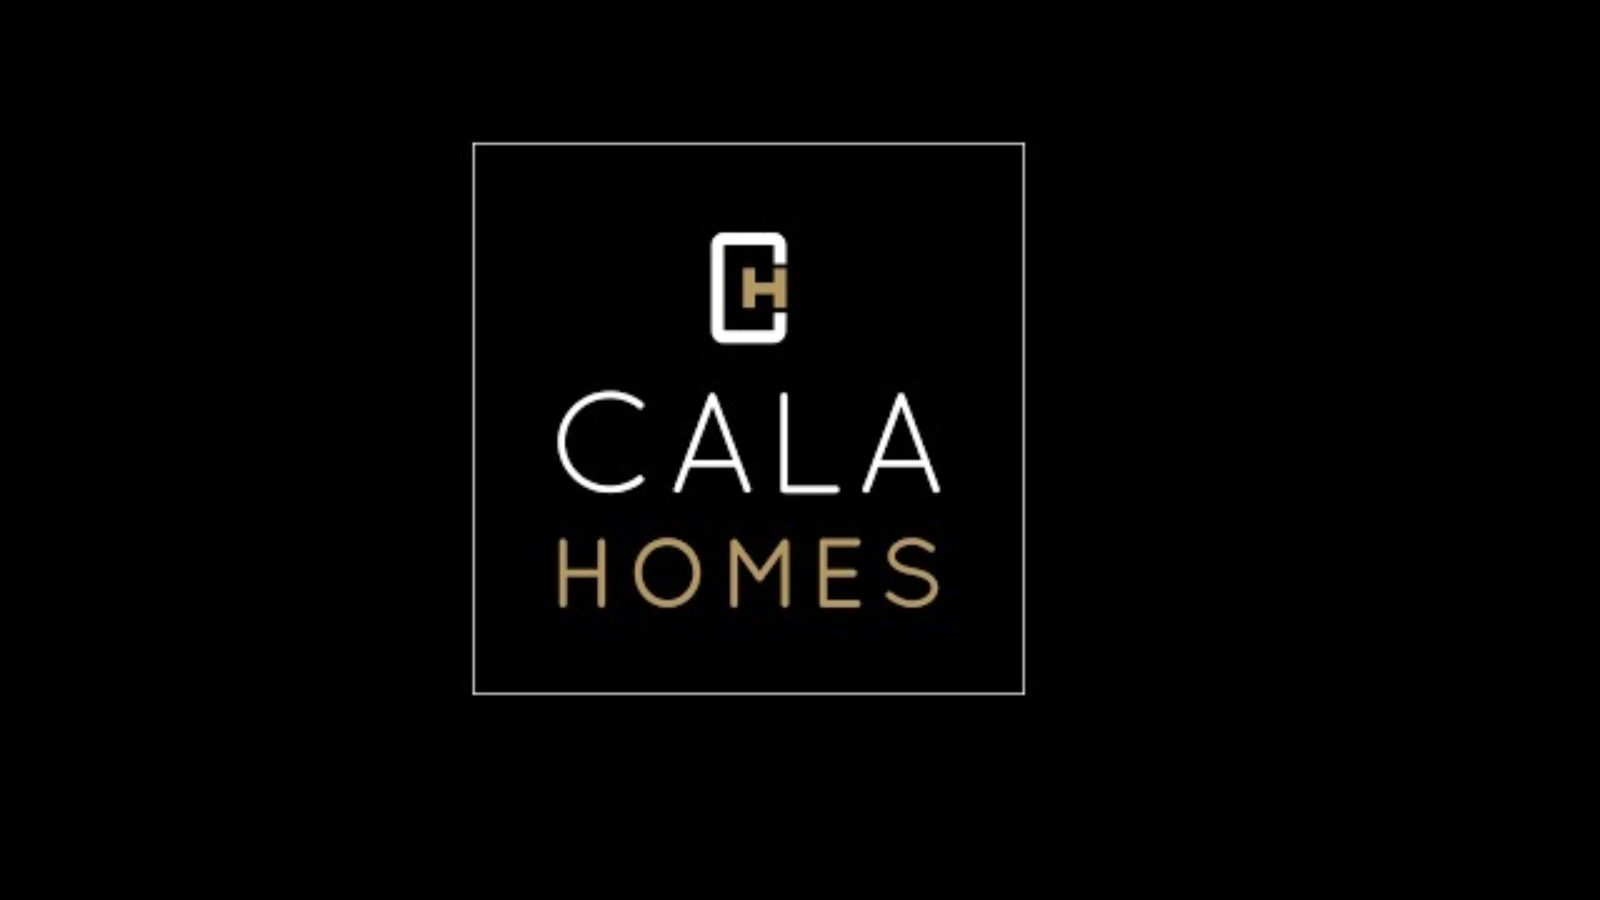 CALA land buyer recognised with commendation